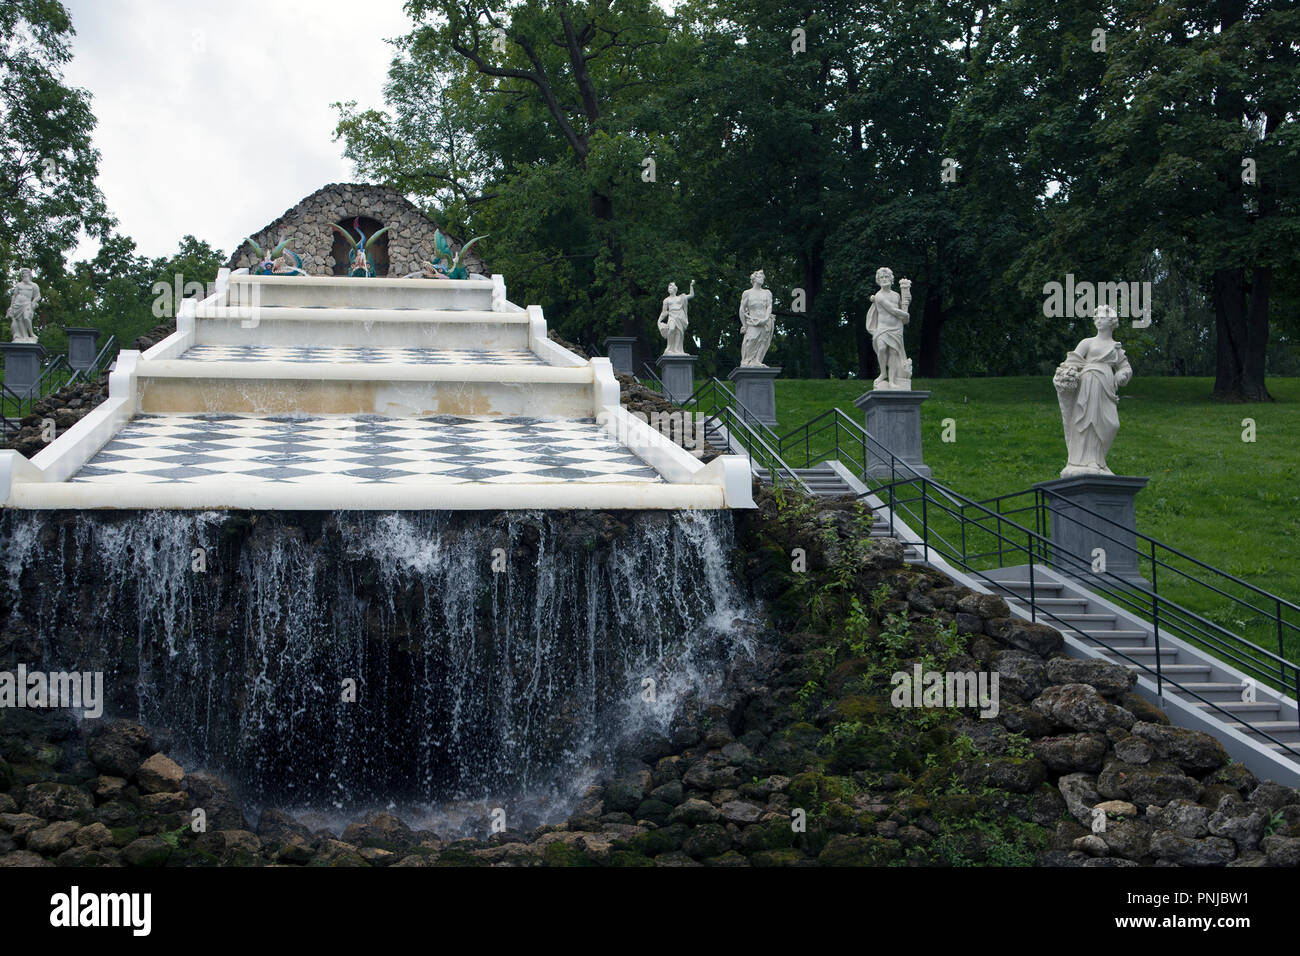 Fountain 'Chess Mountain' in Peterhof, Russia, checkered inclined surface with waterfall, 18th century landmark - Stock Image